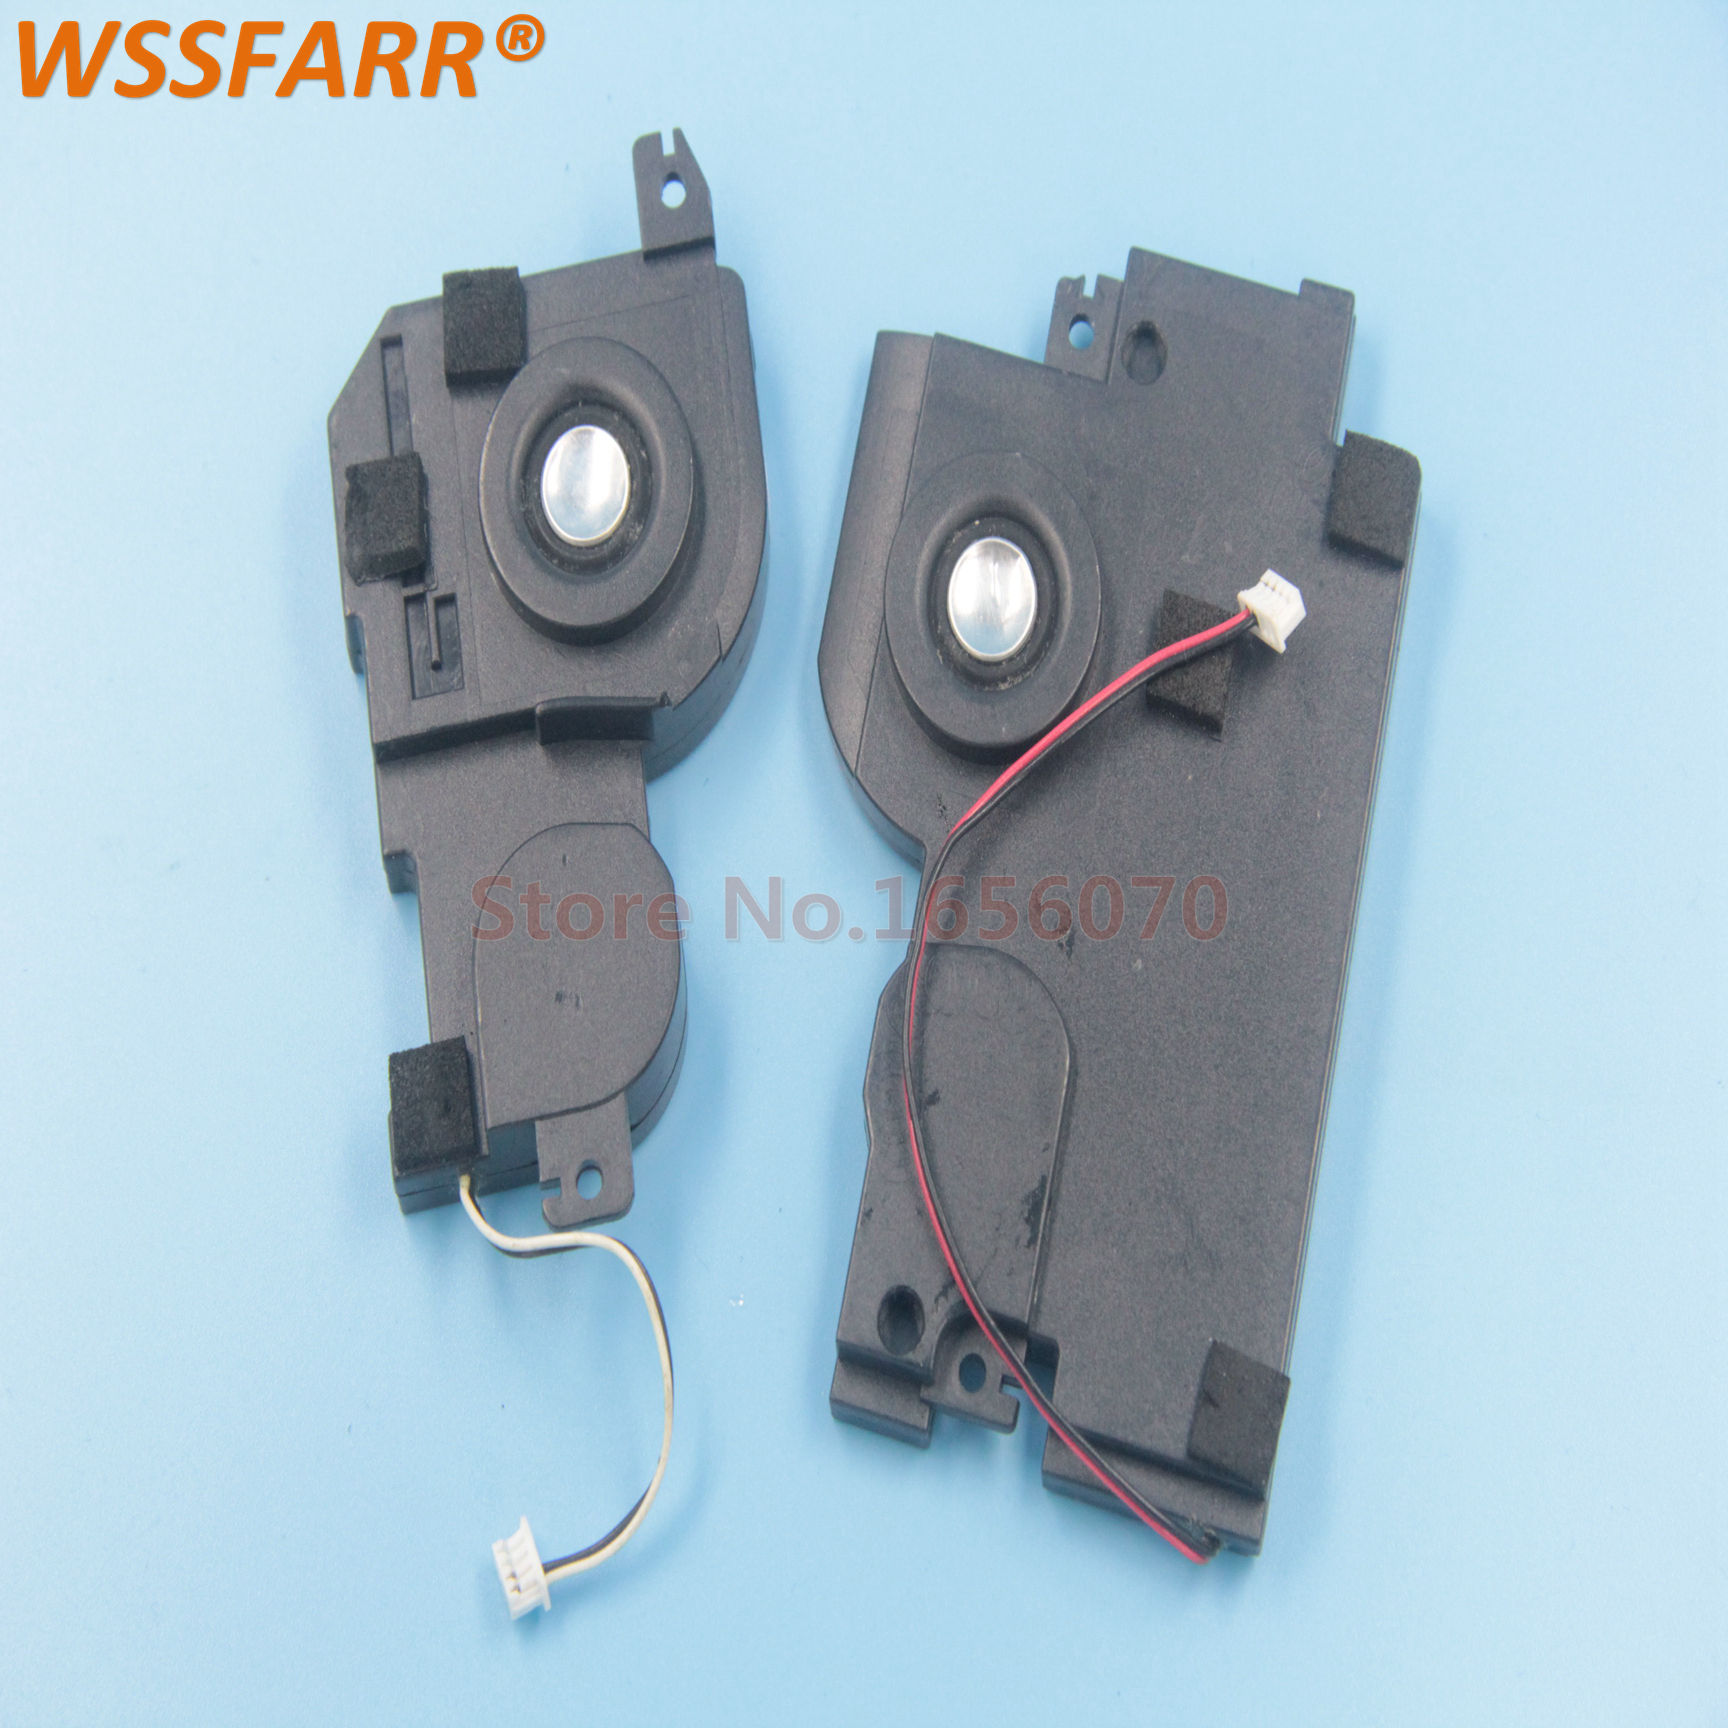 hight resolution of original internal speaker for toshiba p200 p205 x200 left and right speakers pk230006e00 pk230006e10 100